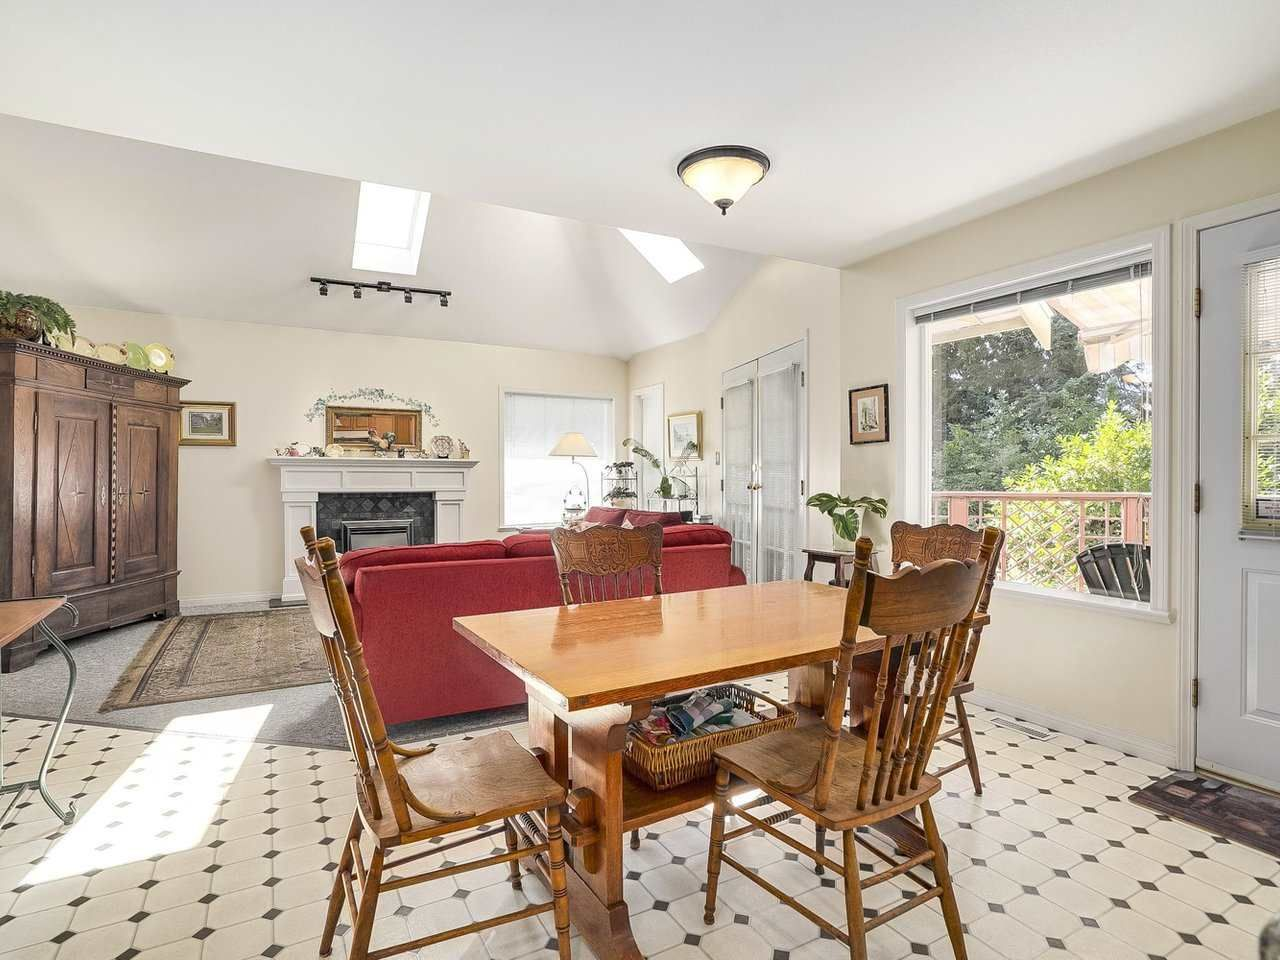 Photo 5: Photos: 1788 GORDON Avenue in West Vancouver: Ambleside House for sale : MLS®# R2207715